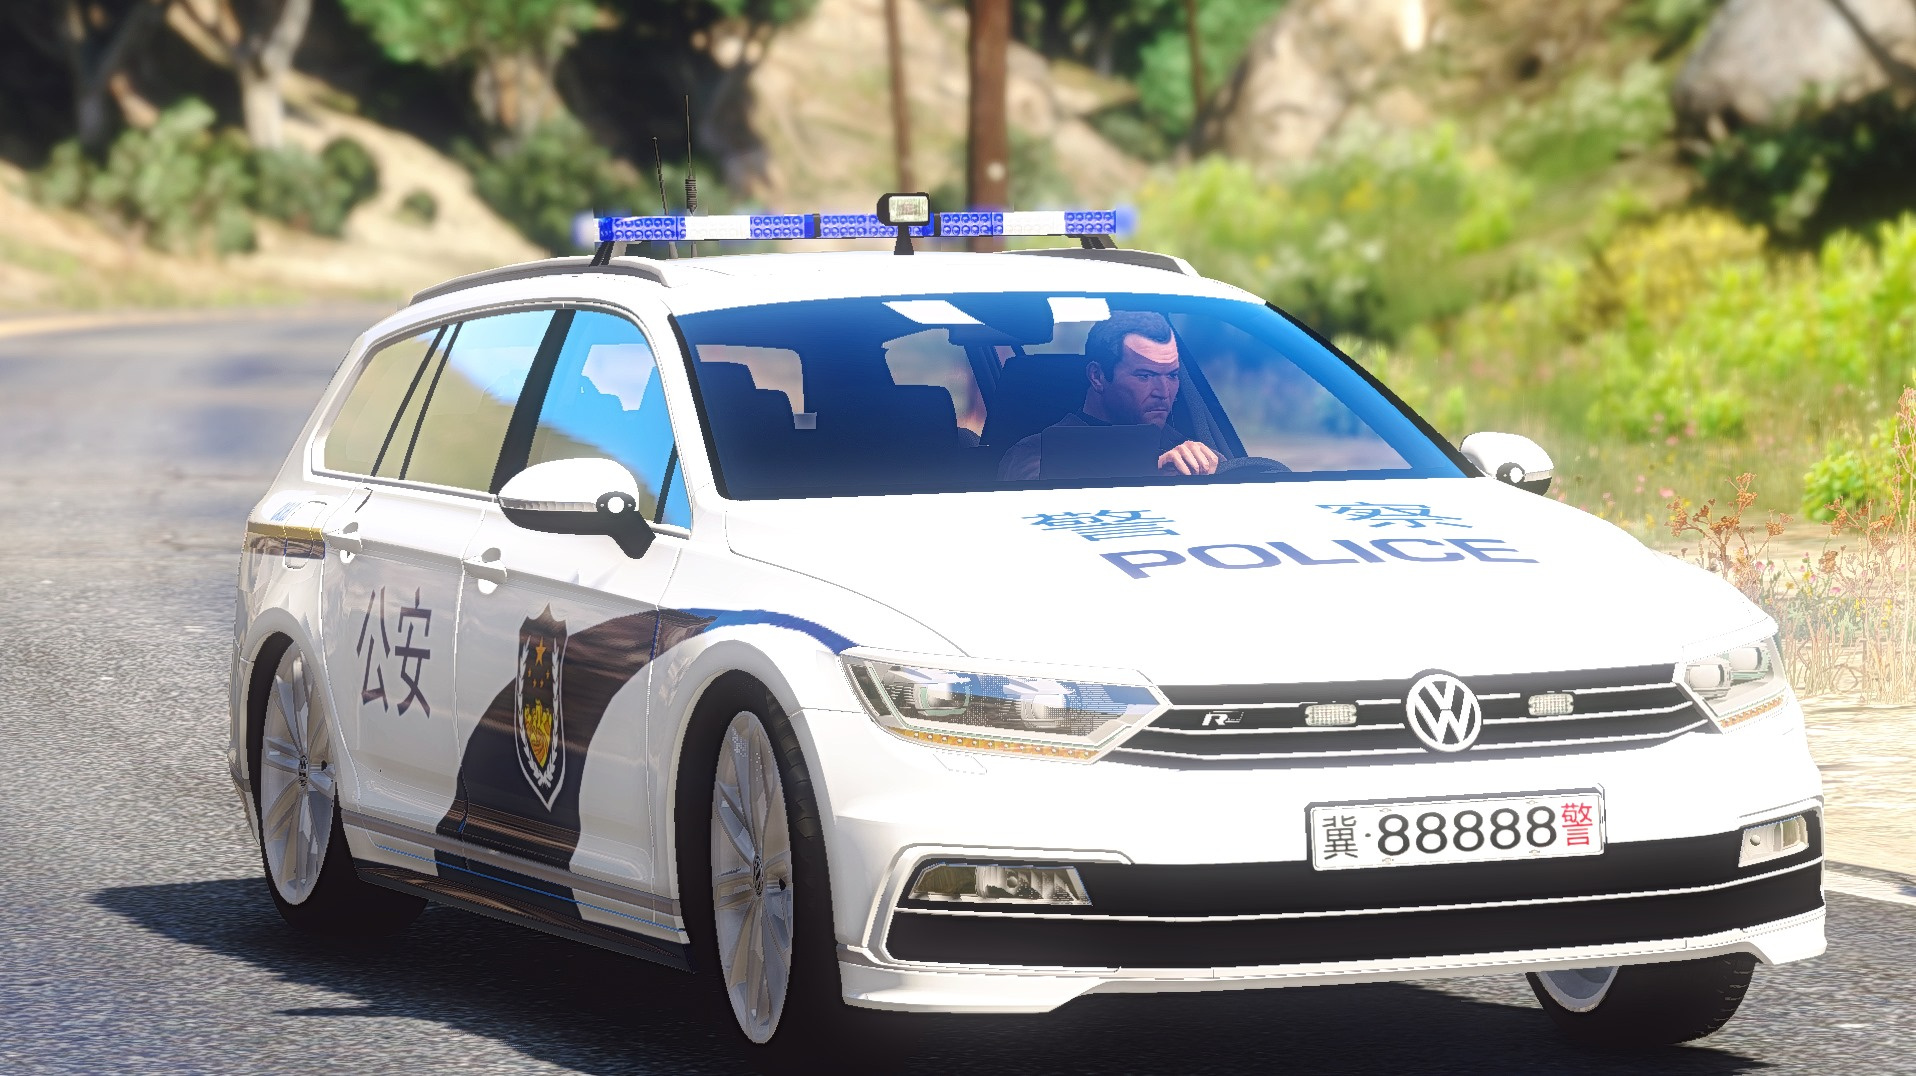 2015 volkswagen passat chinese police gta5. Black Bedroom Furniture Sets. Home Design Ideas